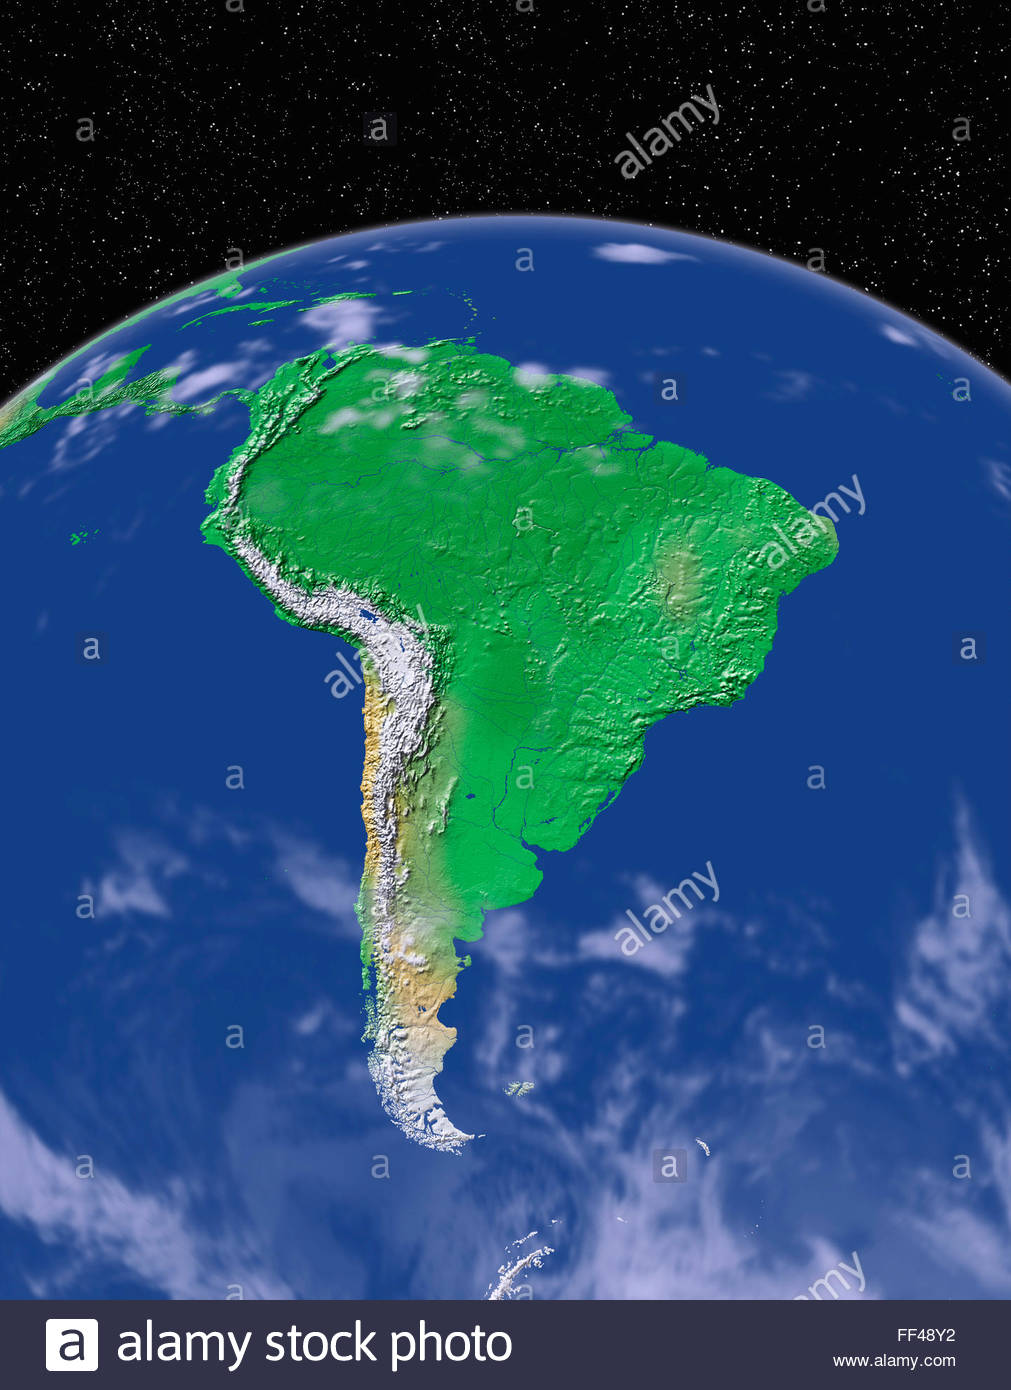 Simulated satellite view of part of the earth from space south stock simulated satellite view of part of the earth from space south america world map space planet globe terrain relief continent gumiabroncs Gallery